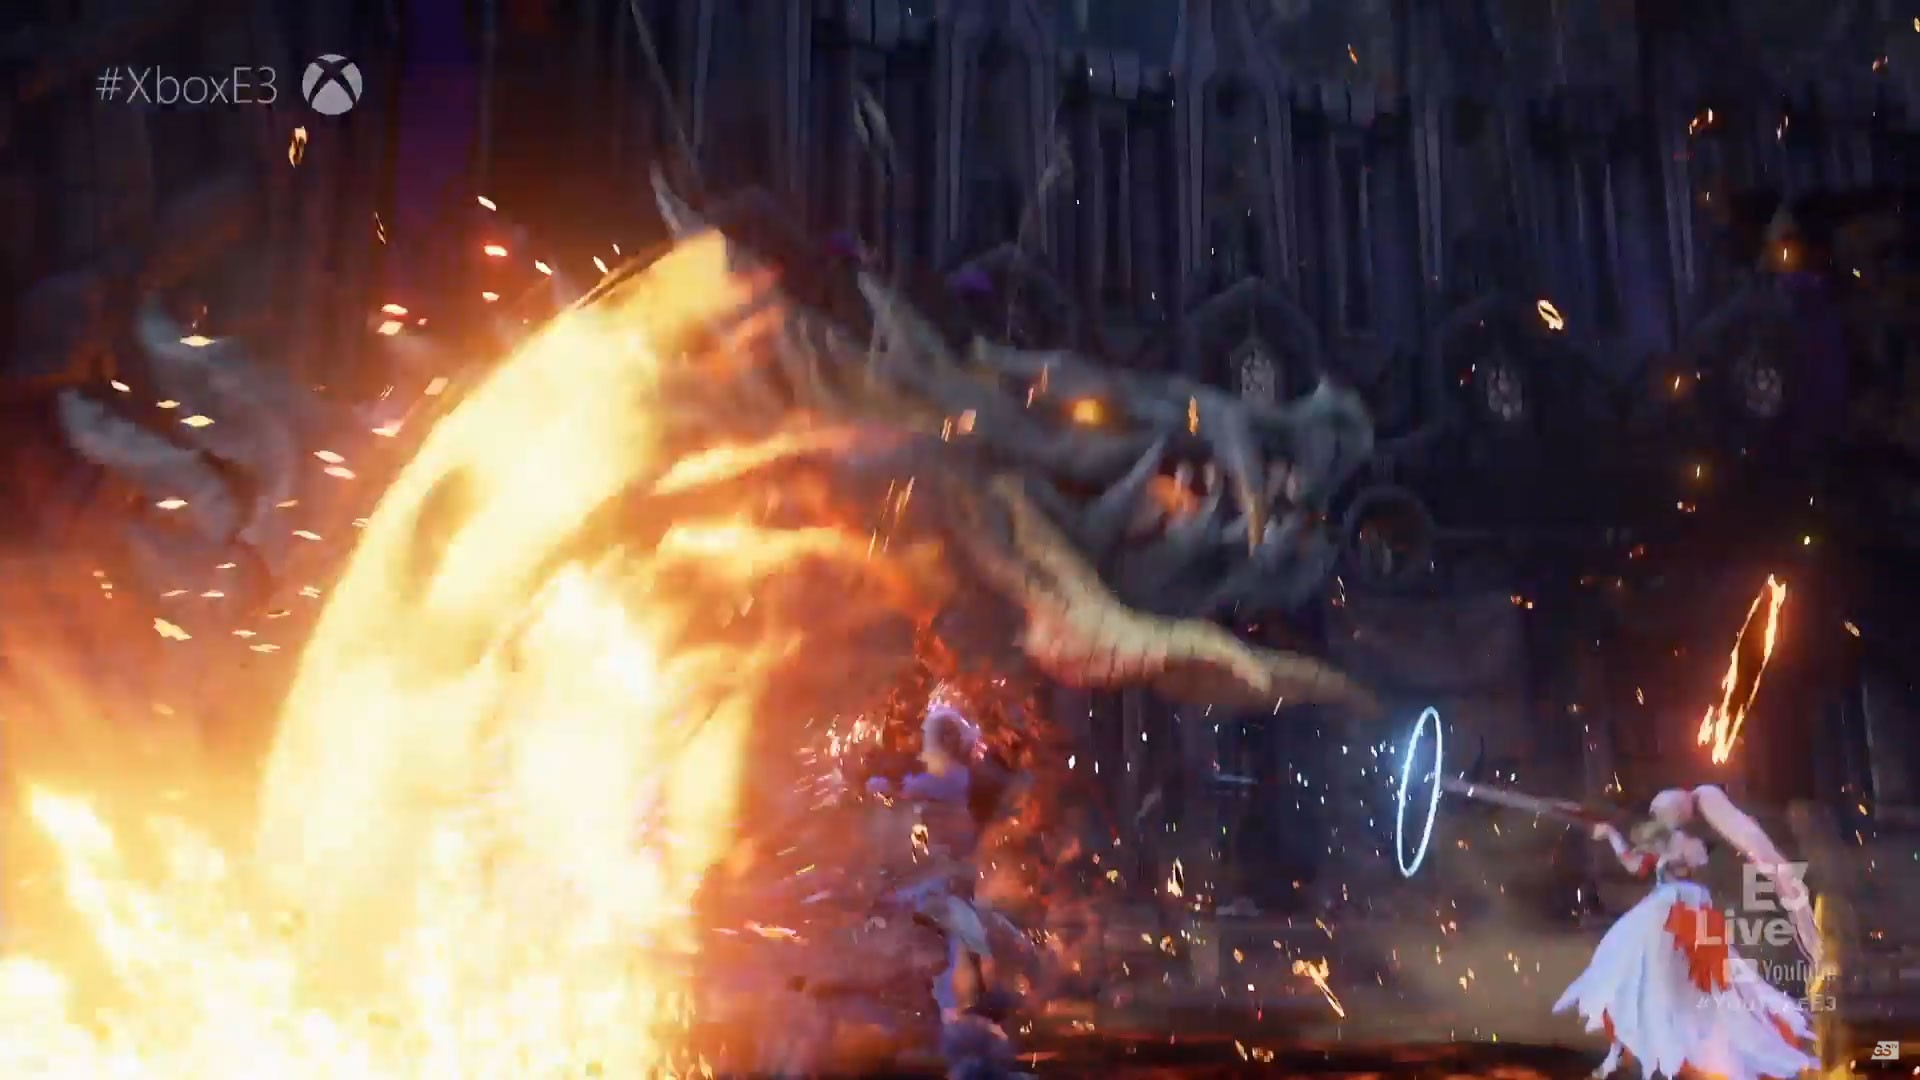 Tales of Arise, PS4, XONE, PlayStation 4, Xbox One, features, trailer, price, tgs2019, tokyo game show 2019, pre-order, Bandai Namco, US, North America, Europe, Australia, Asia